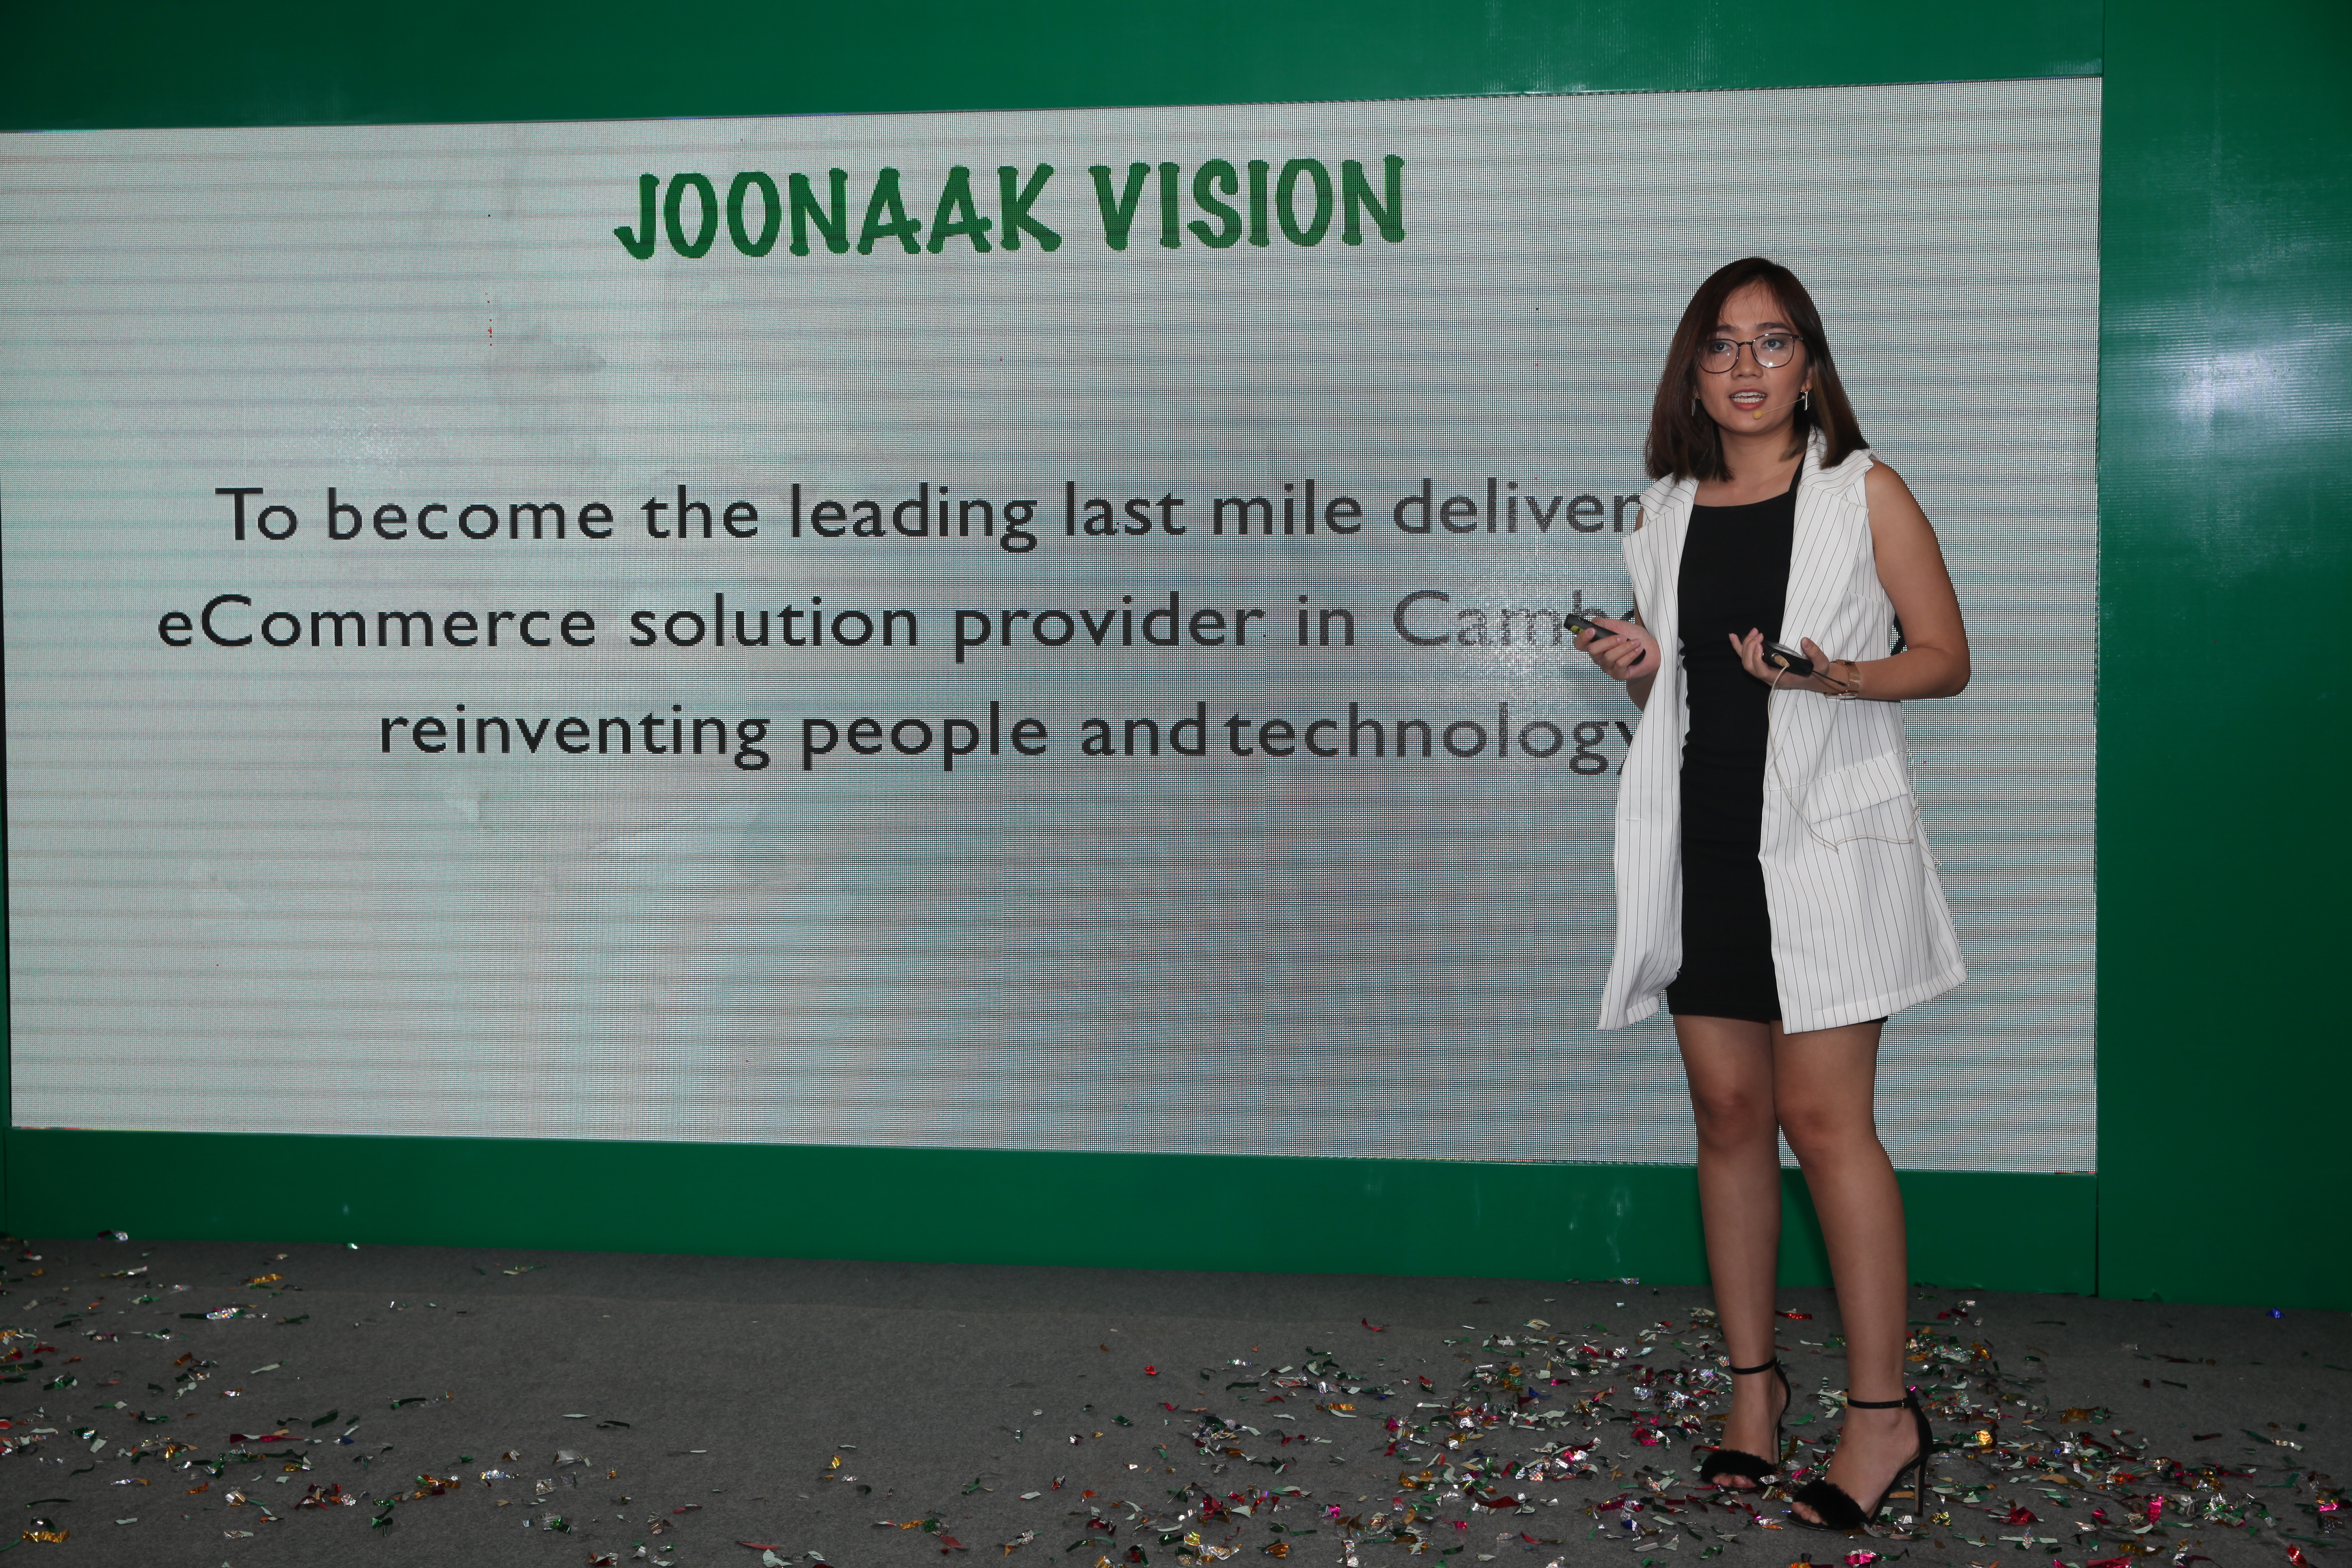 Joonak presenting their business vision to those present at the announcement event